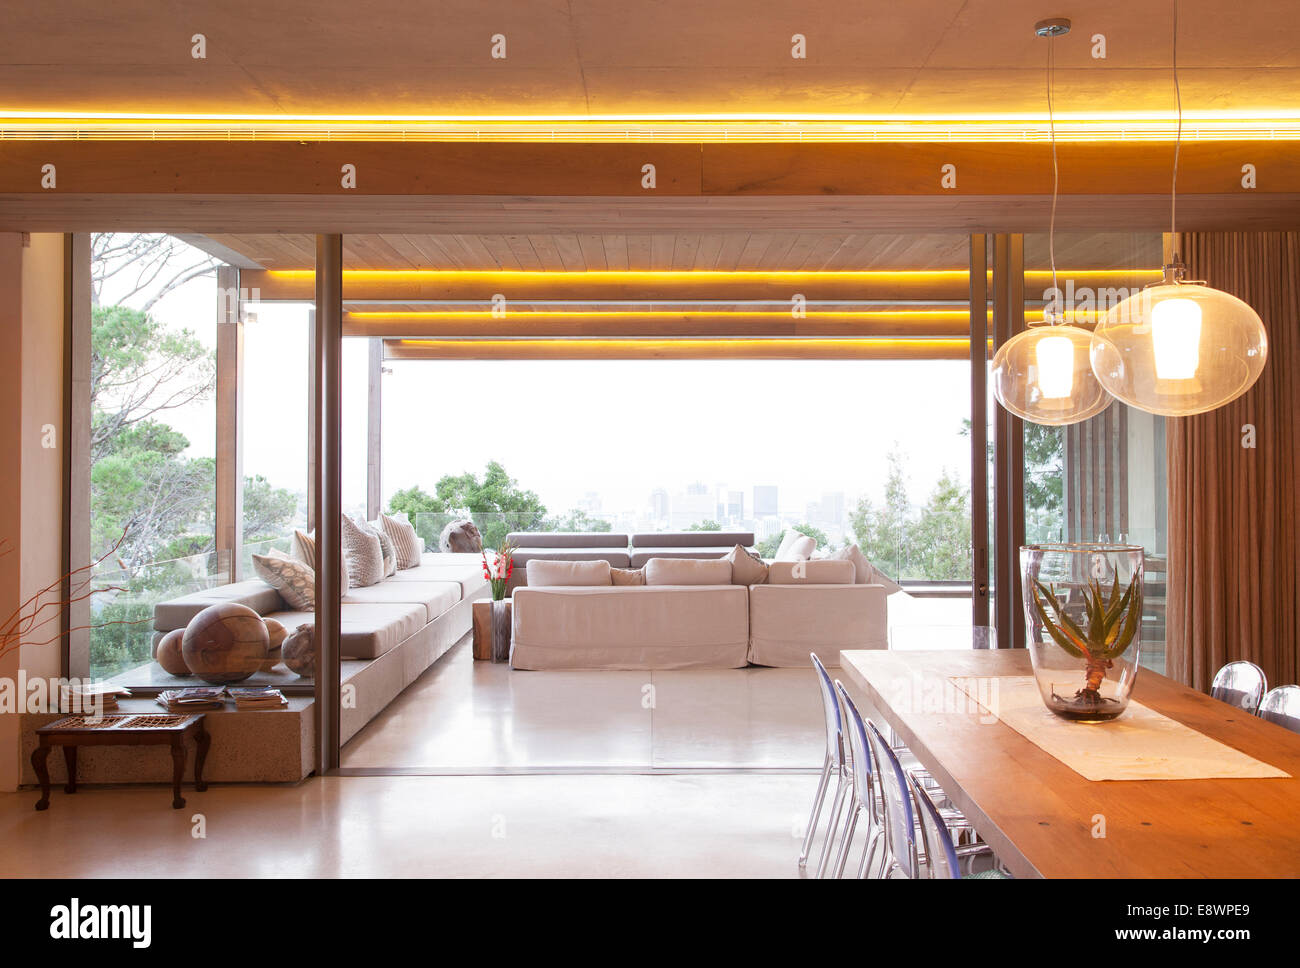 Sliding Glass Doors Between Open Modern Living And Dining Rooms